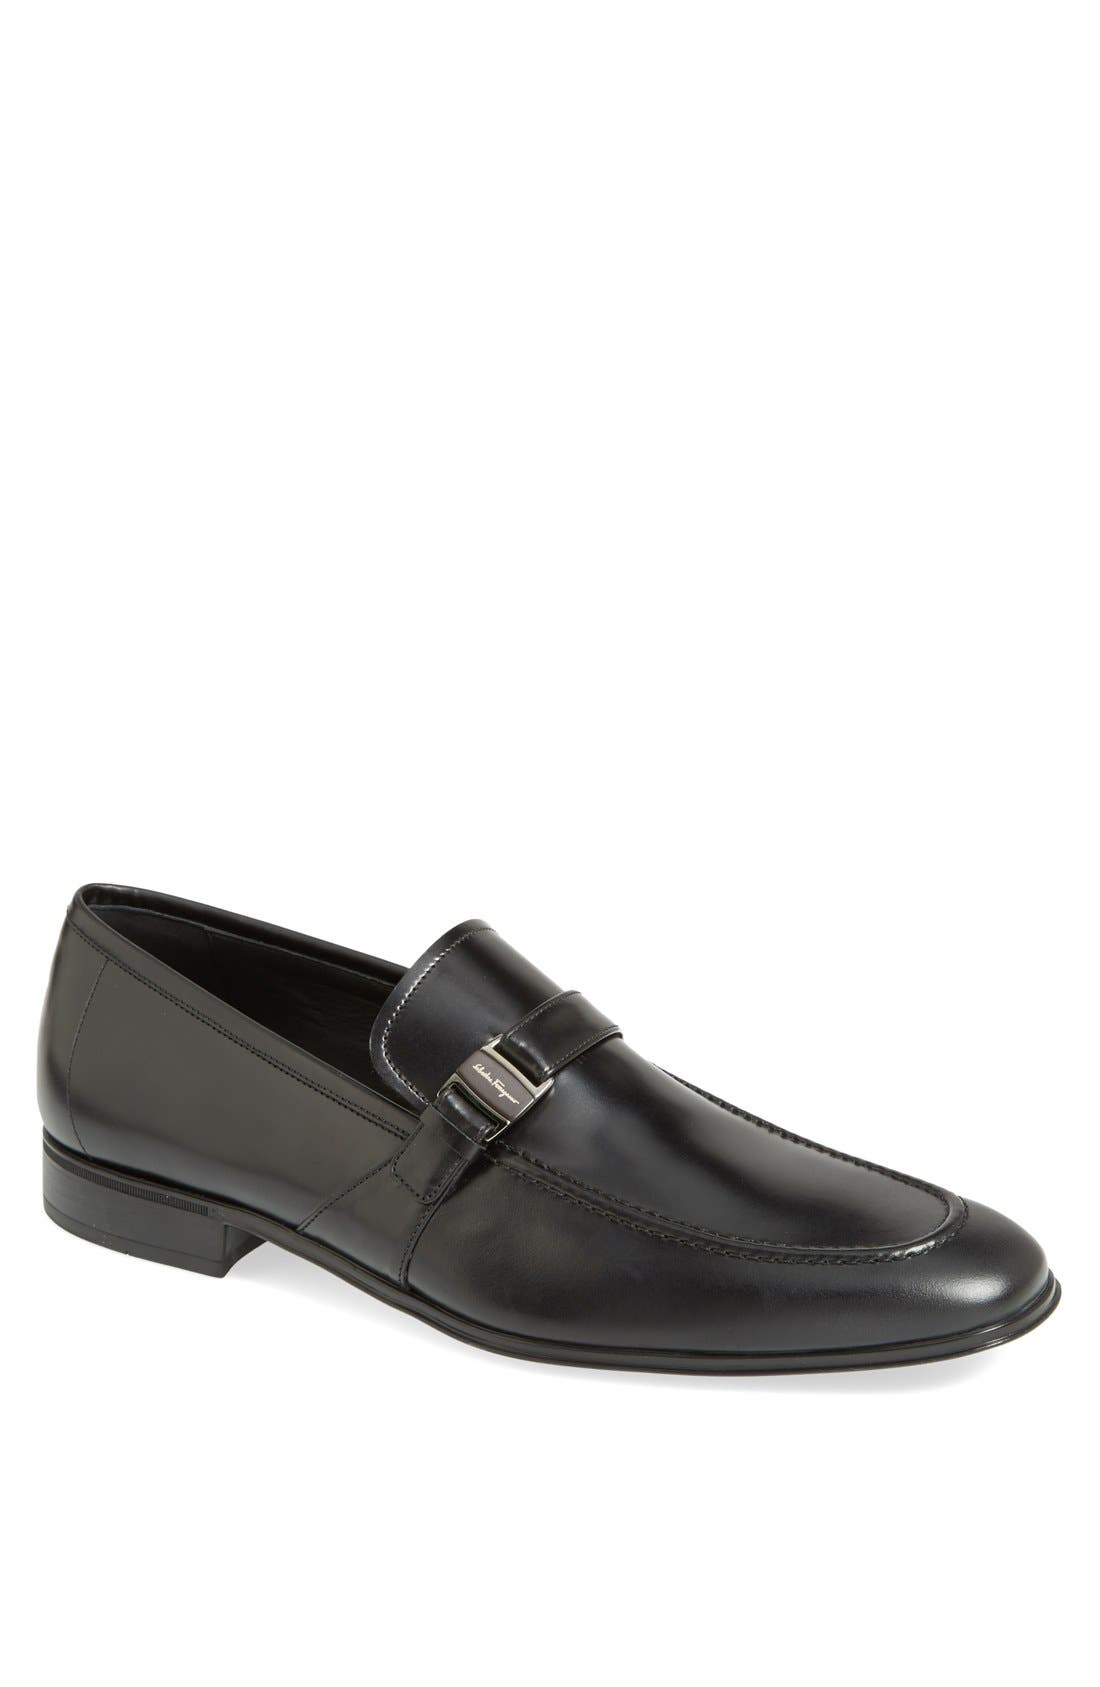 'Pinot' Loafer, Main, color, 001